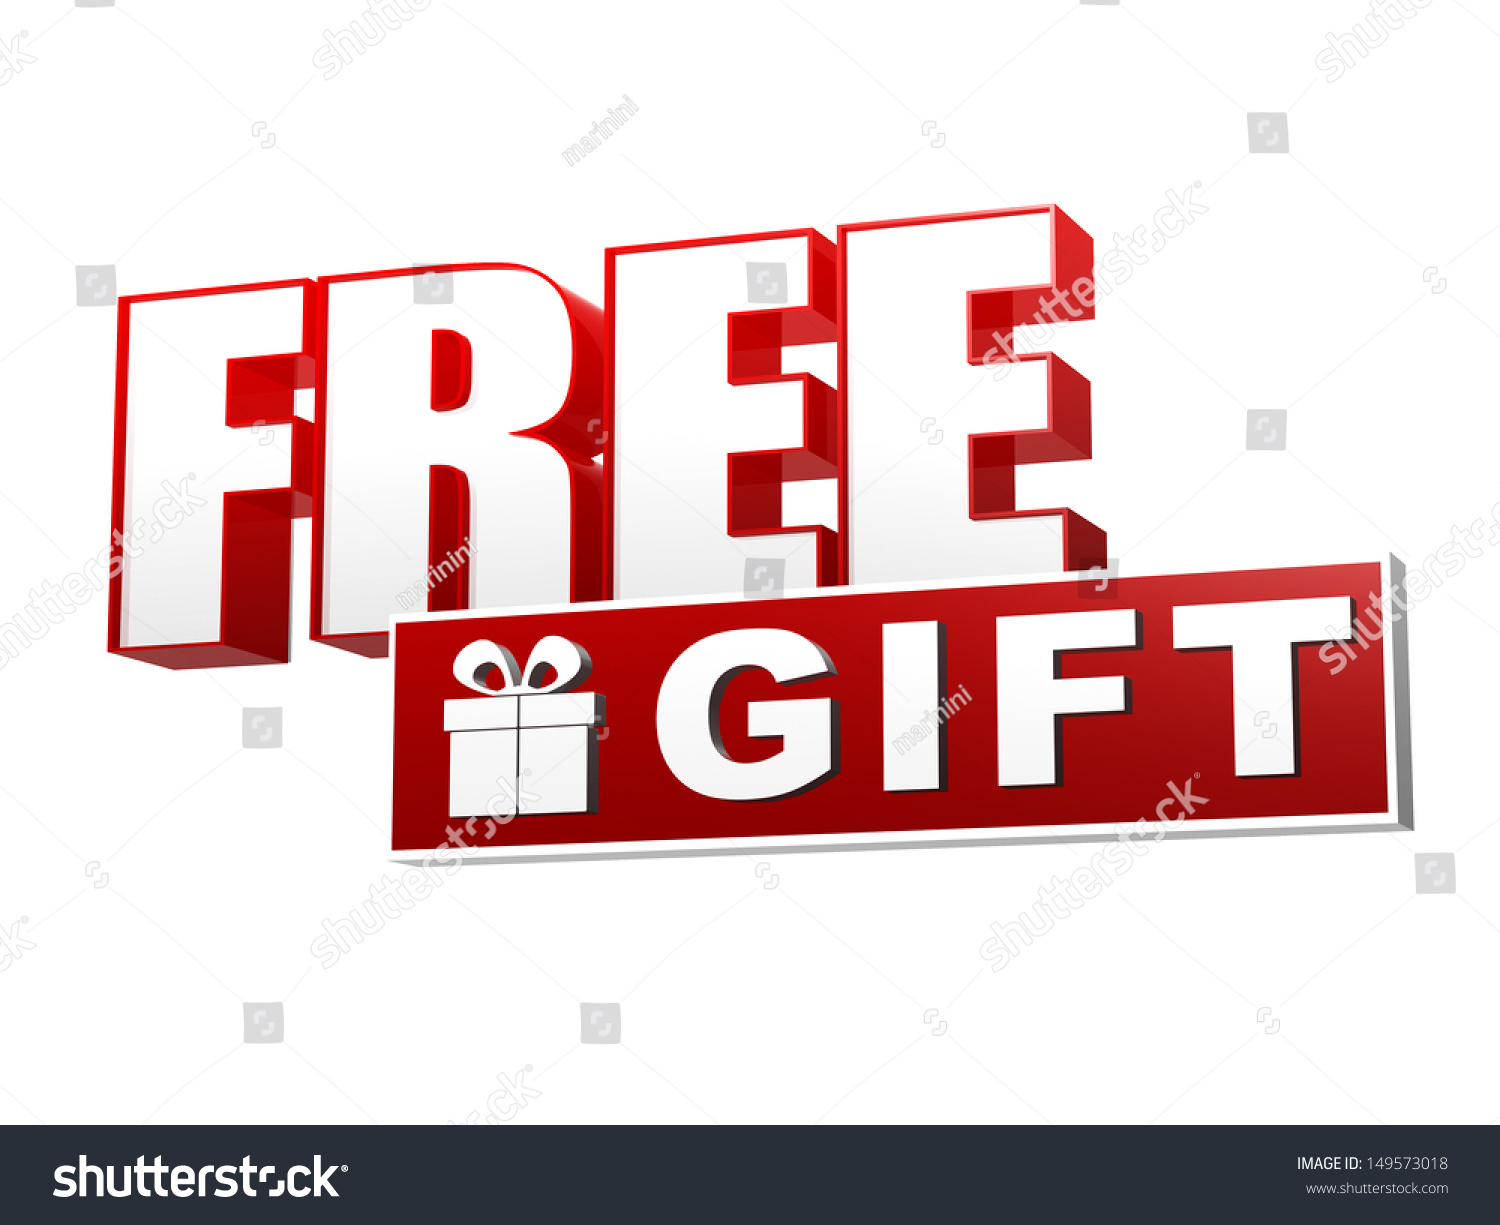 Free gift present box symbol text 149573018 free gift and present box symbol text and sign in 3d red white banner negle Images